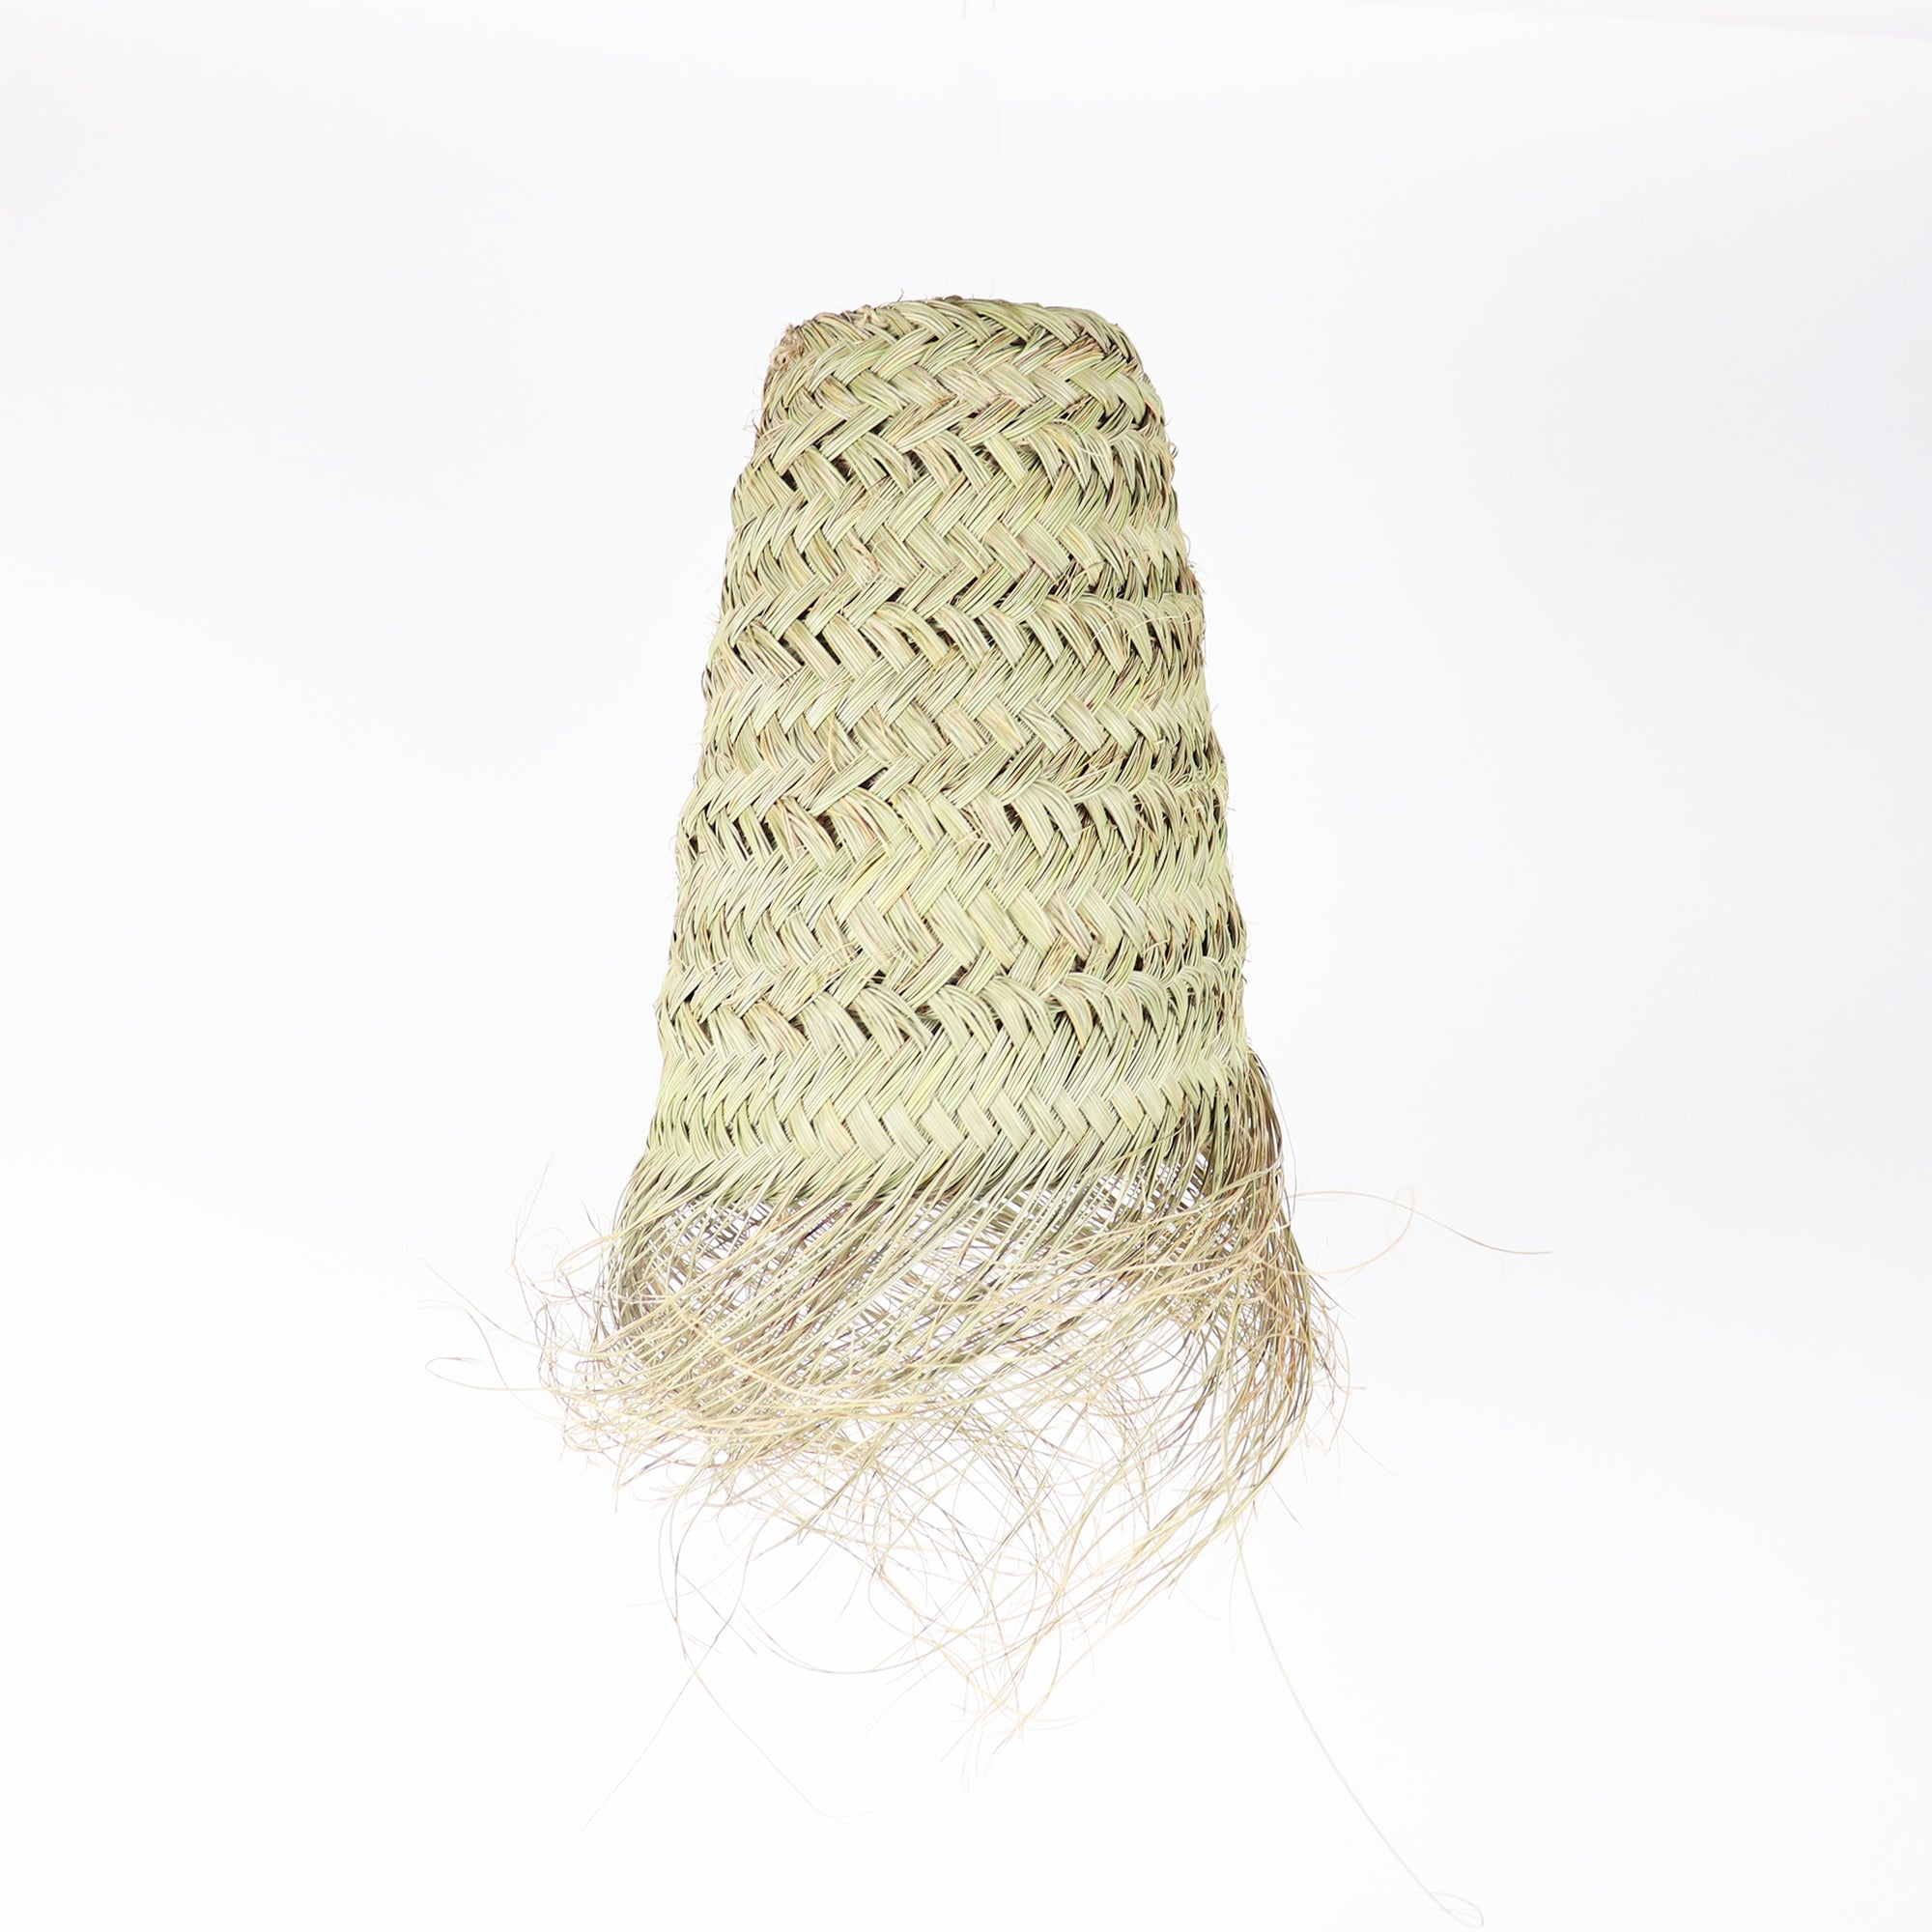 Hand woven Straw light pendant